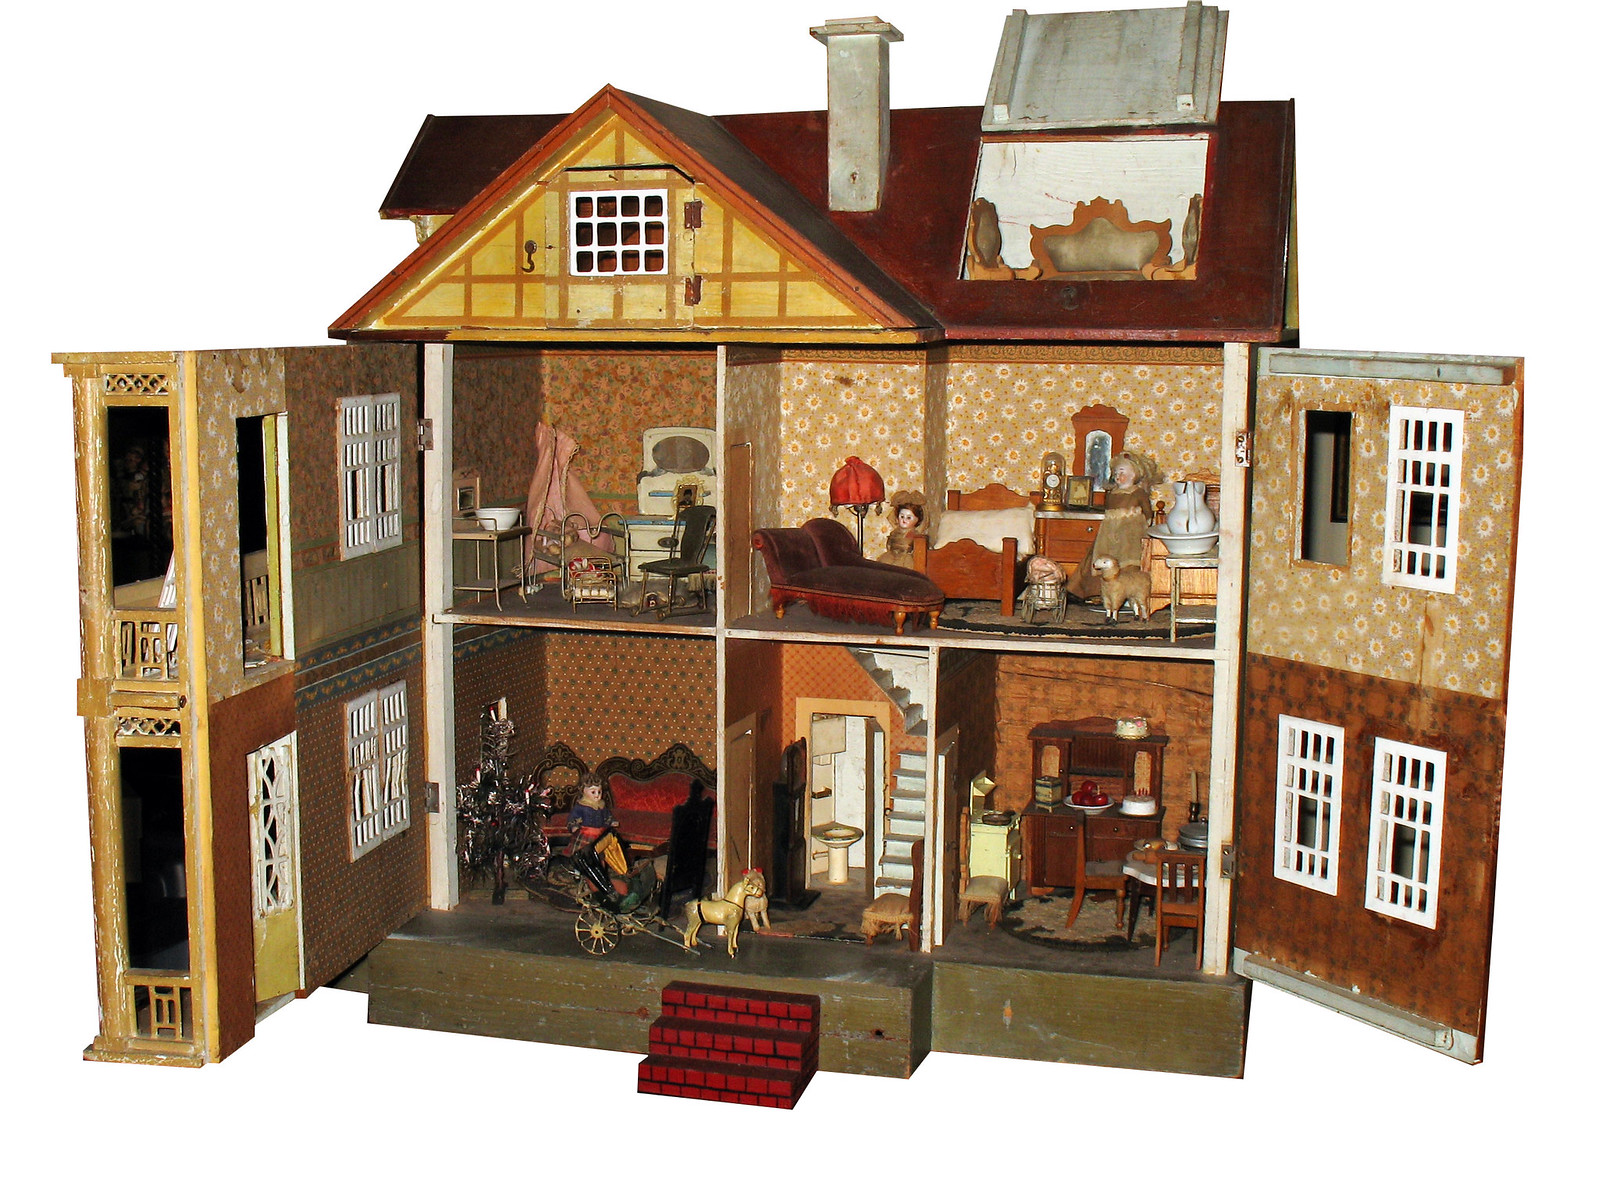 Antique English Dollhouse. Credit Paul Keleher